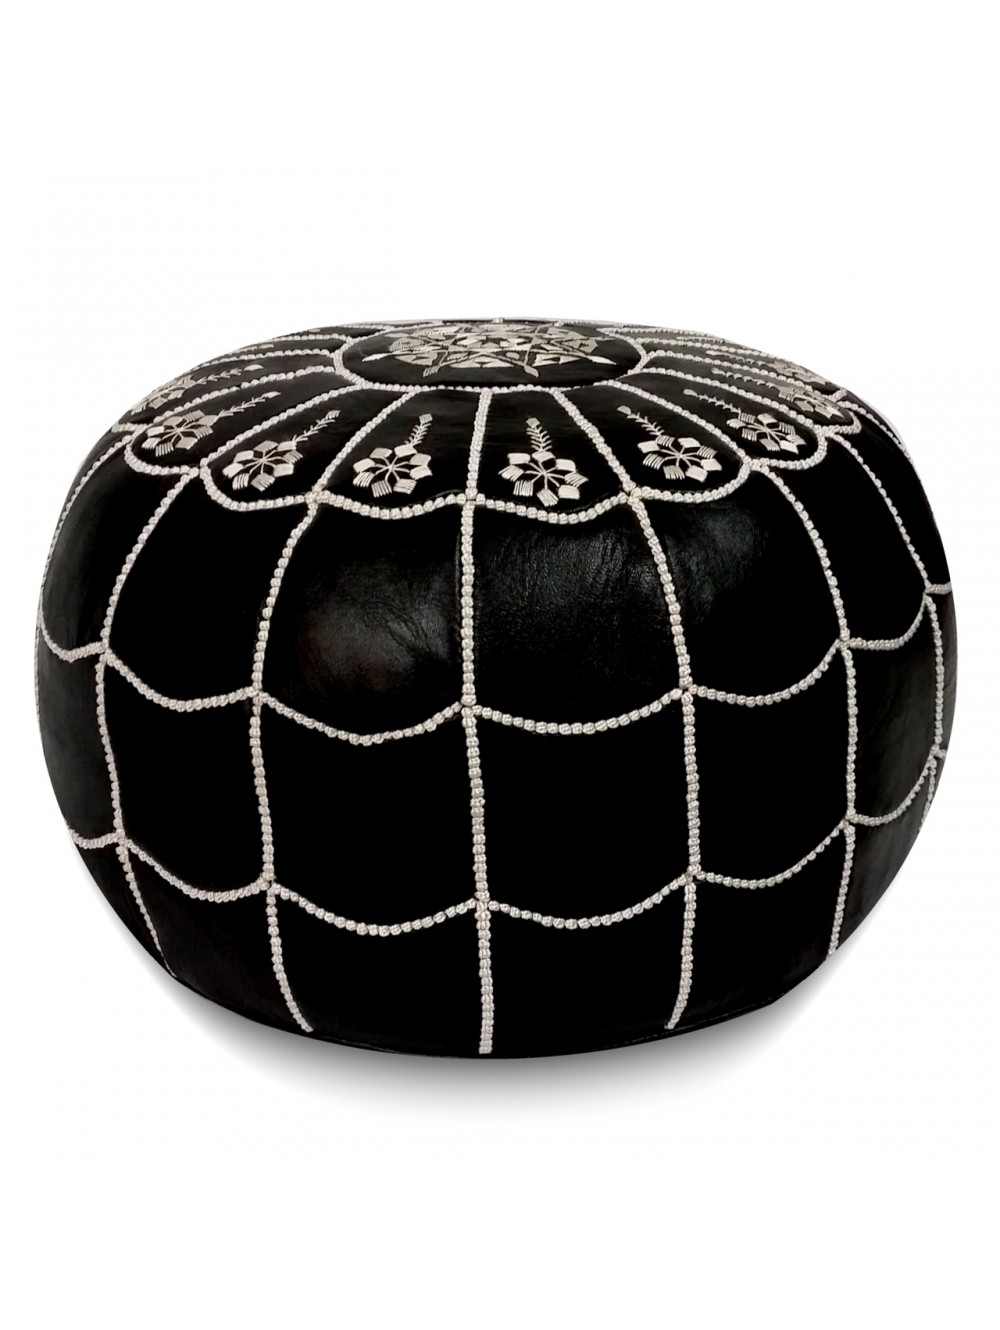 Though my other half may hate to hear this, I am on a bit of redecorating wave. Or at least trying to be. I think our place is lovely but could do with some refined updates as we get just a little bit older and more refined ourselves. And  this black leather pouf  is pretty incredible...